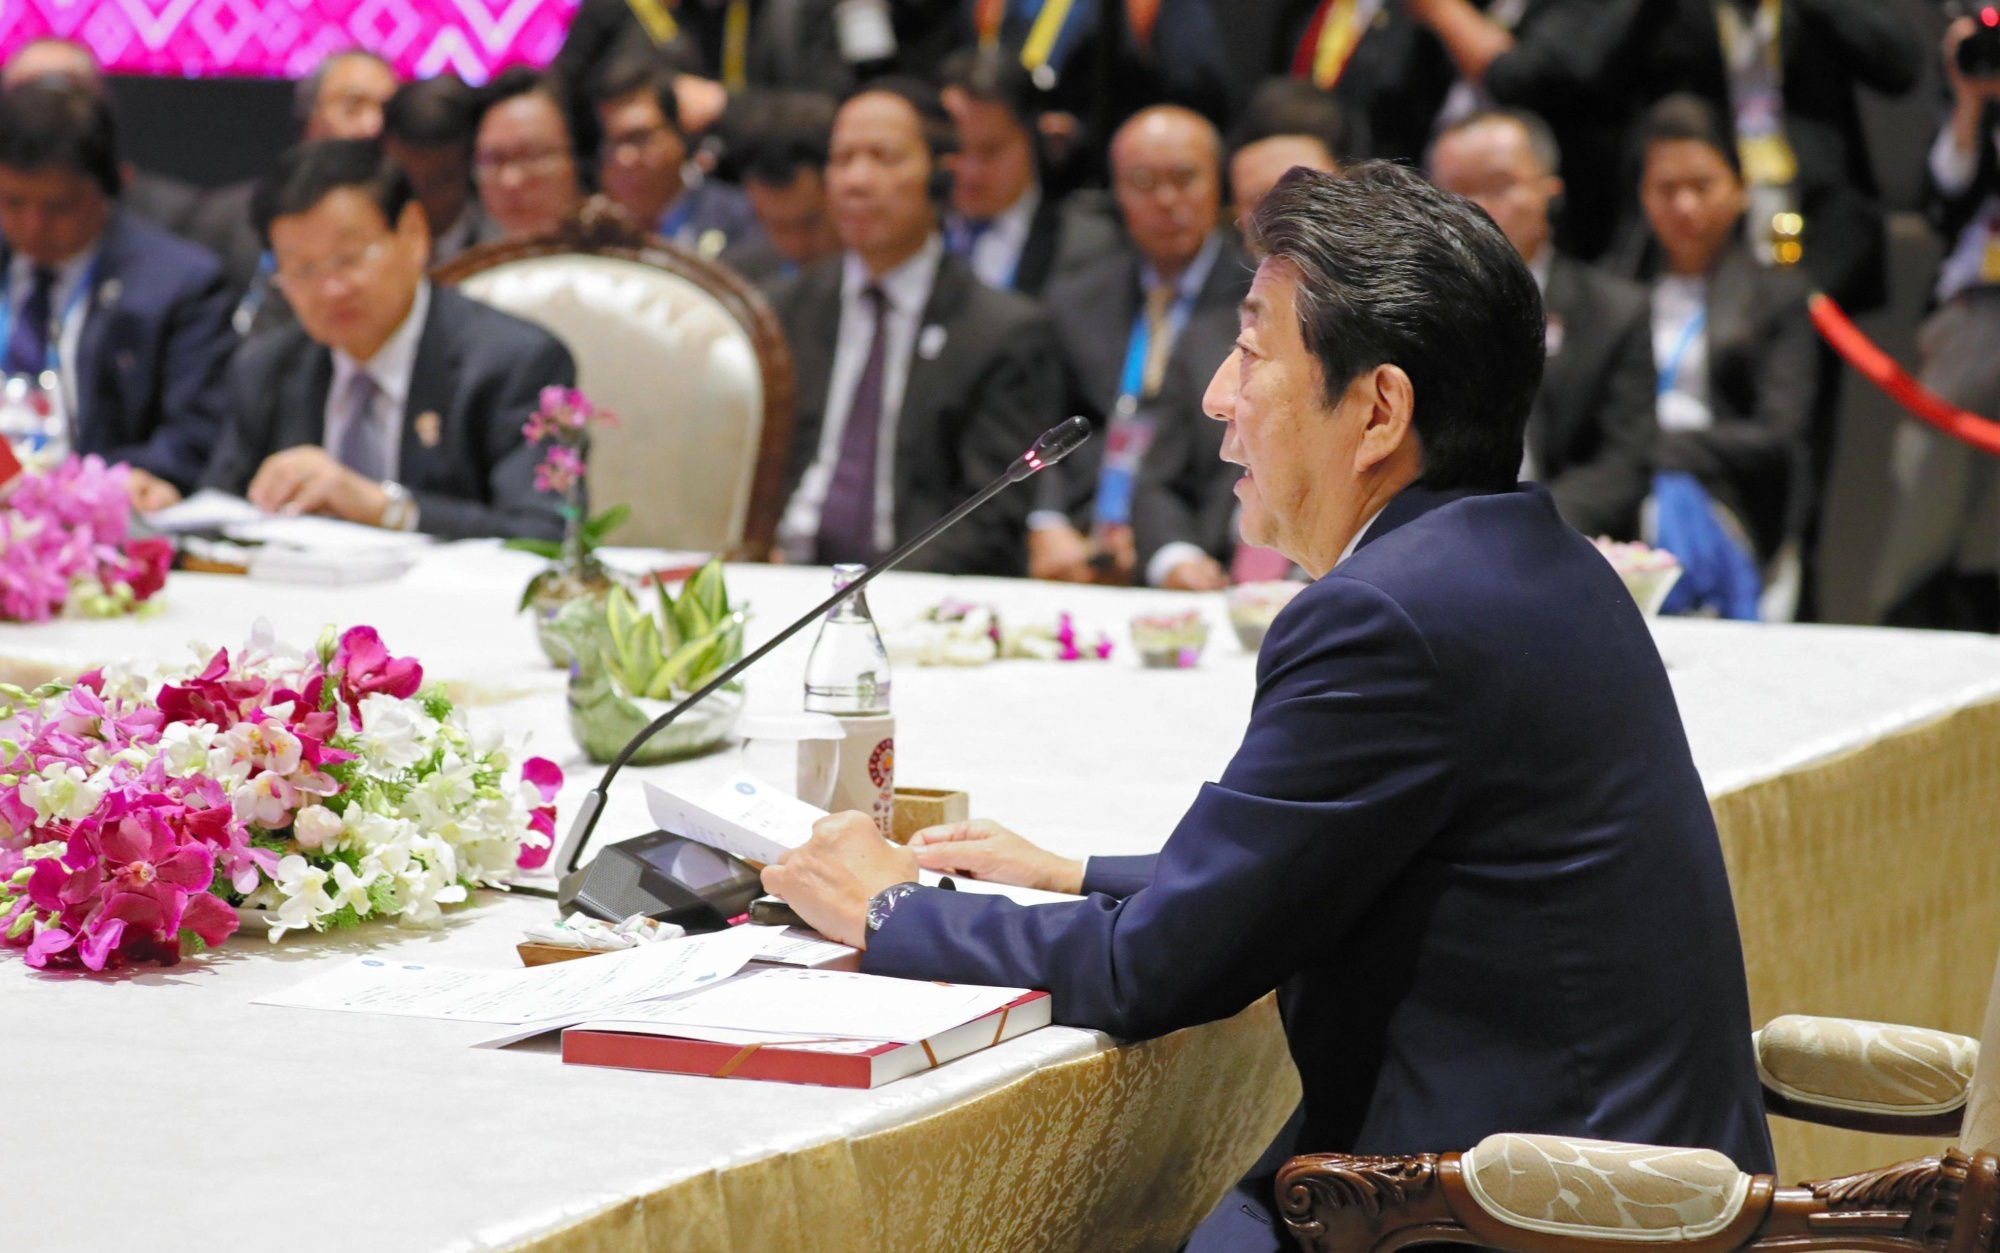 Prime Minister Shinzo Abe speaks at a meeting of the Association of Southeast Asian Nations leaders Monday on the outskirts of Bangkok. | POOL / VIA KYODO